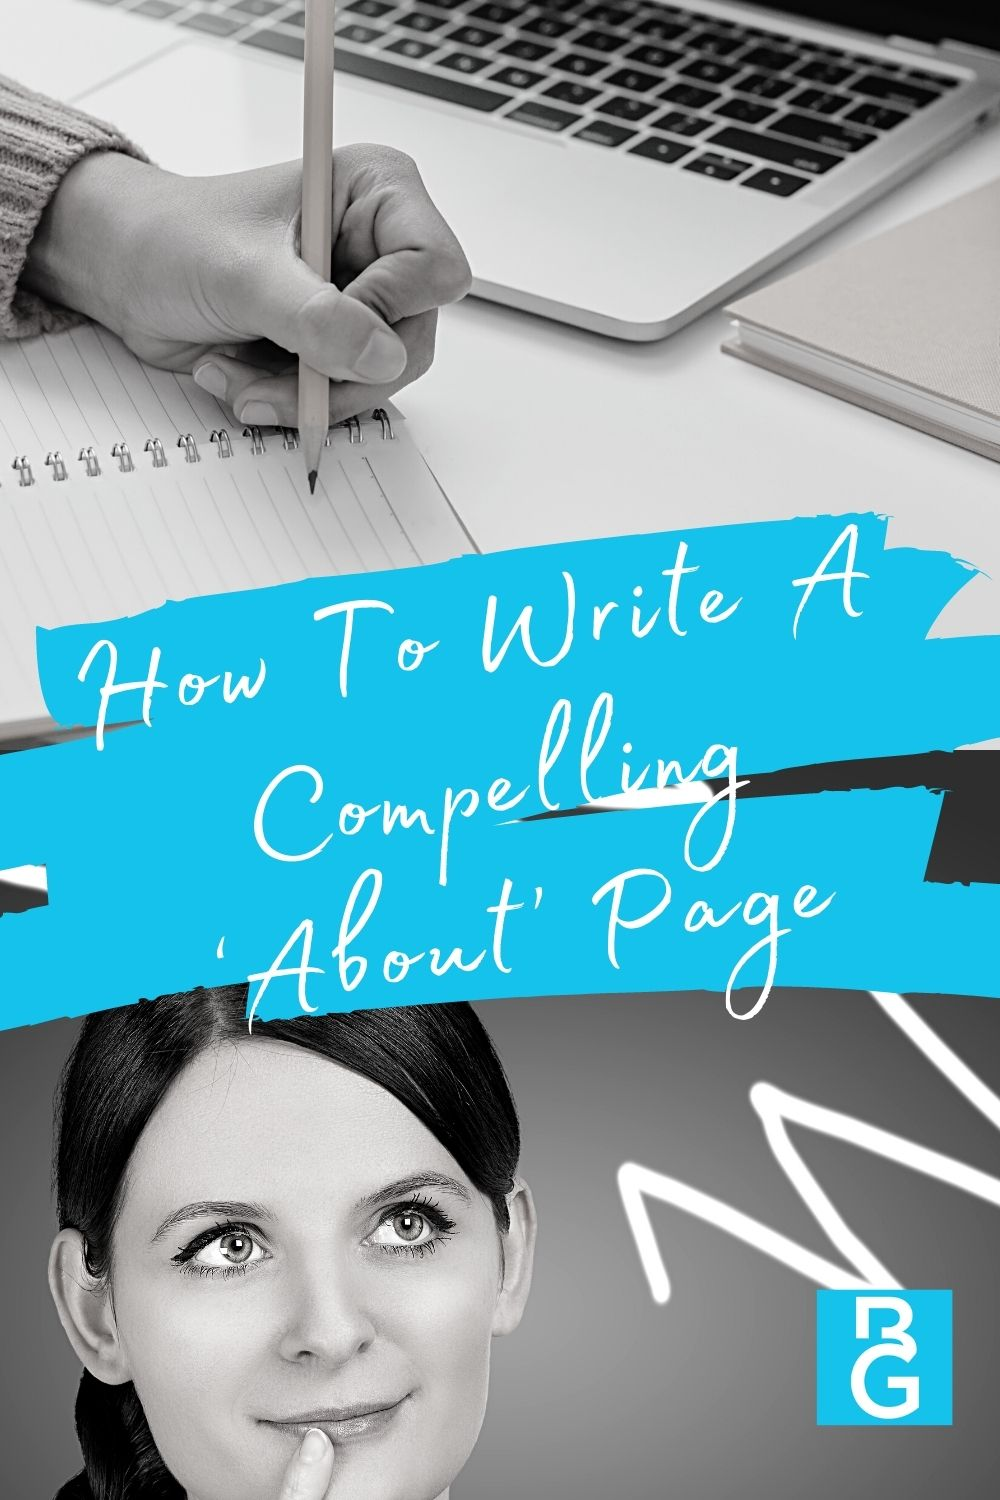 How to Write A Compelling About Page Laptop and notebook with pencil and woman with her hand on her chin like she is thinking.